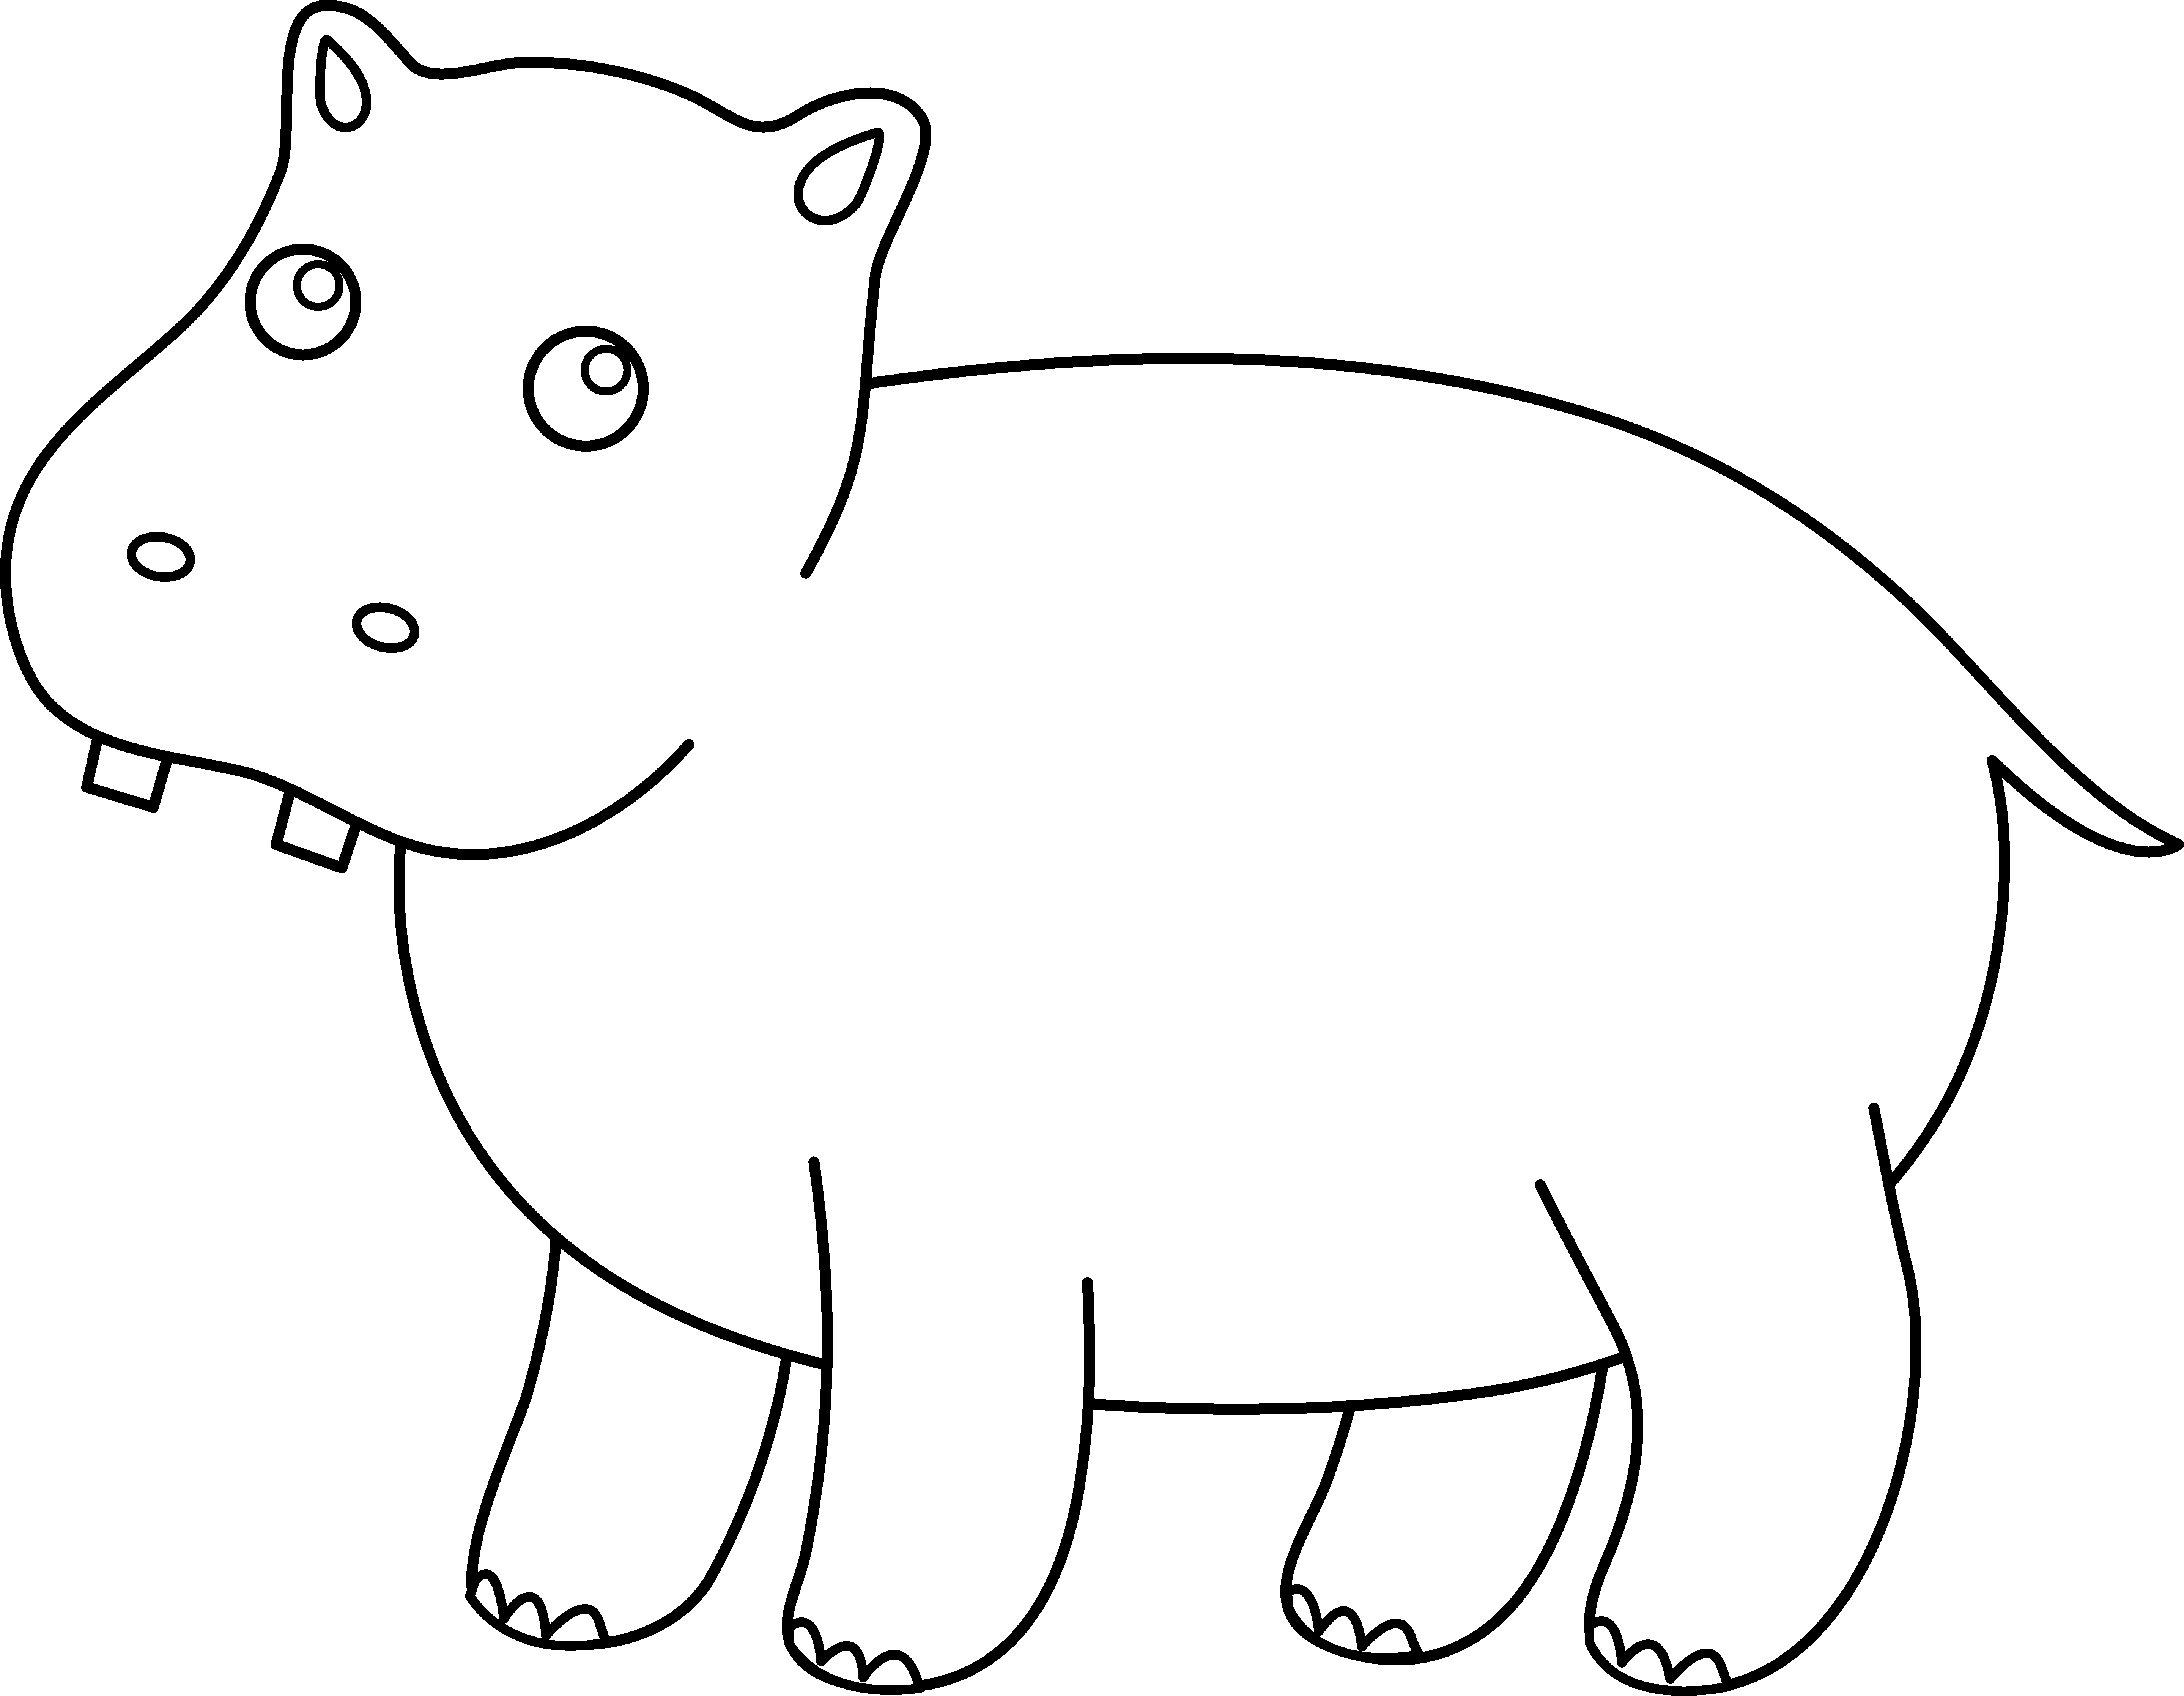 hippo outline drawing hippo line drawing at getdrawings free download hippo outline drawing